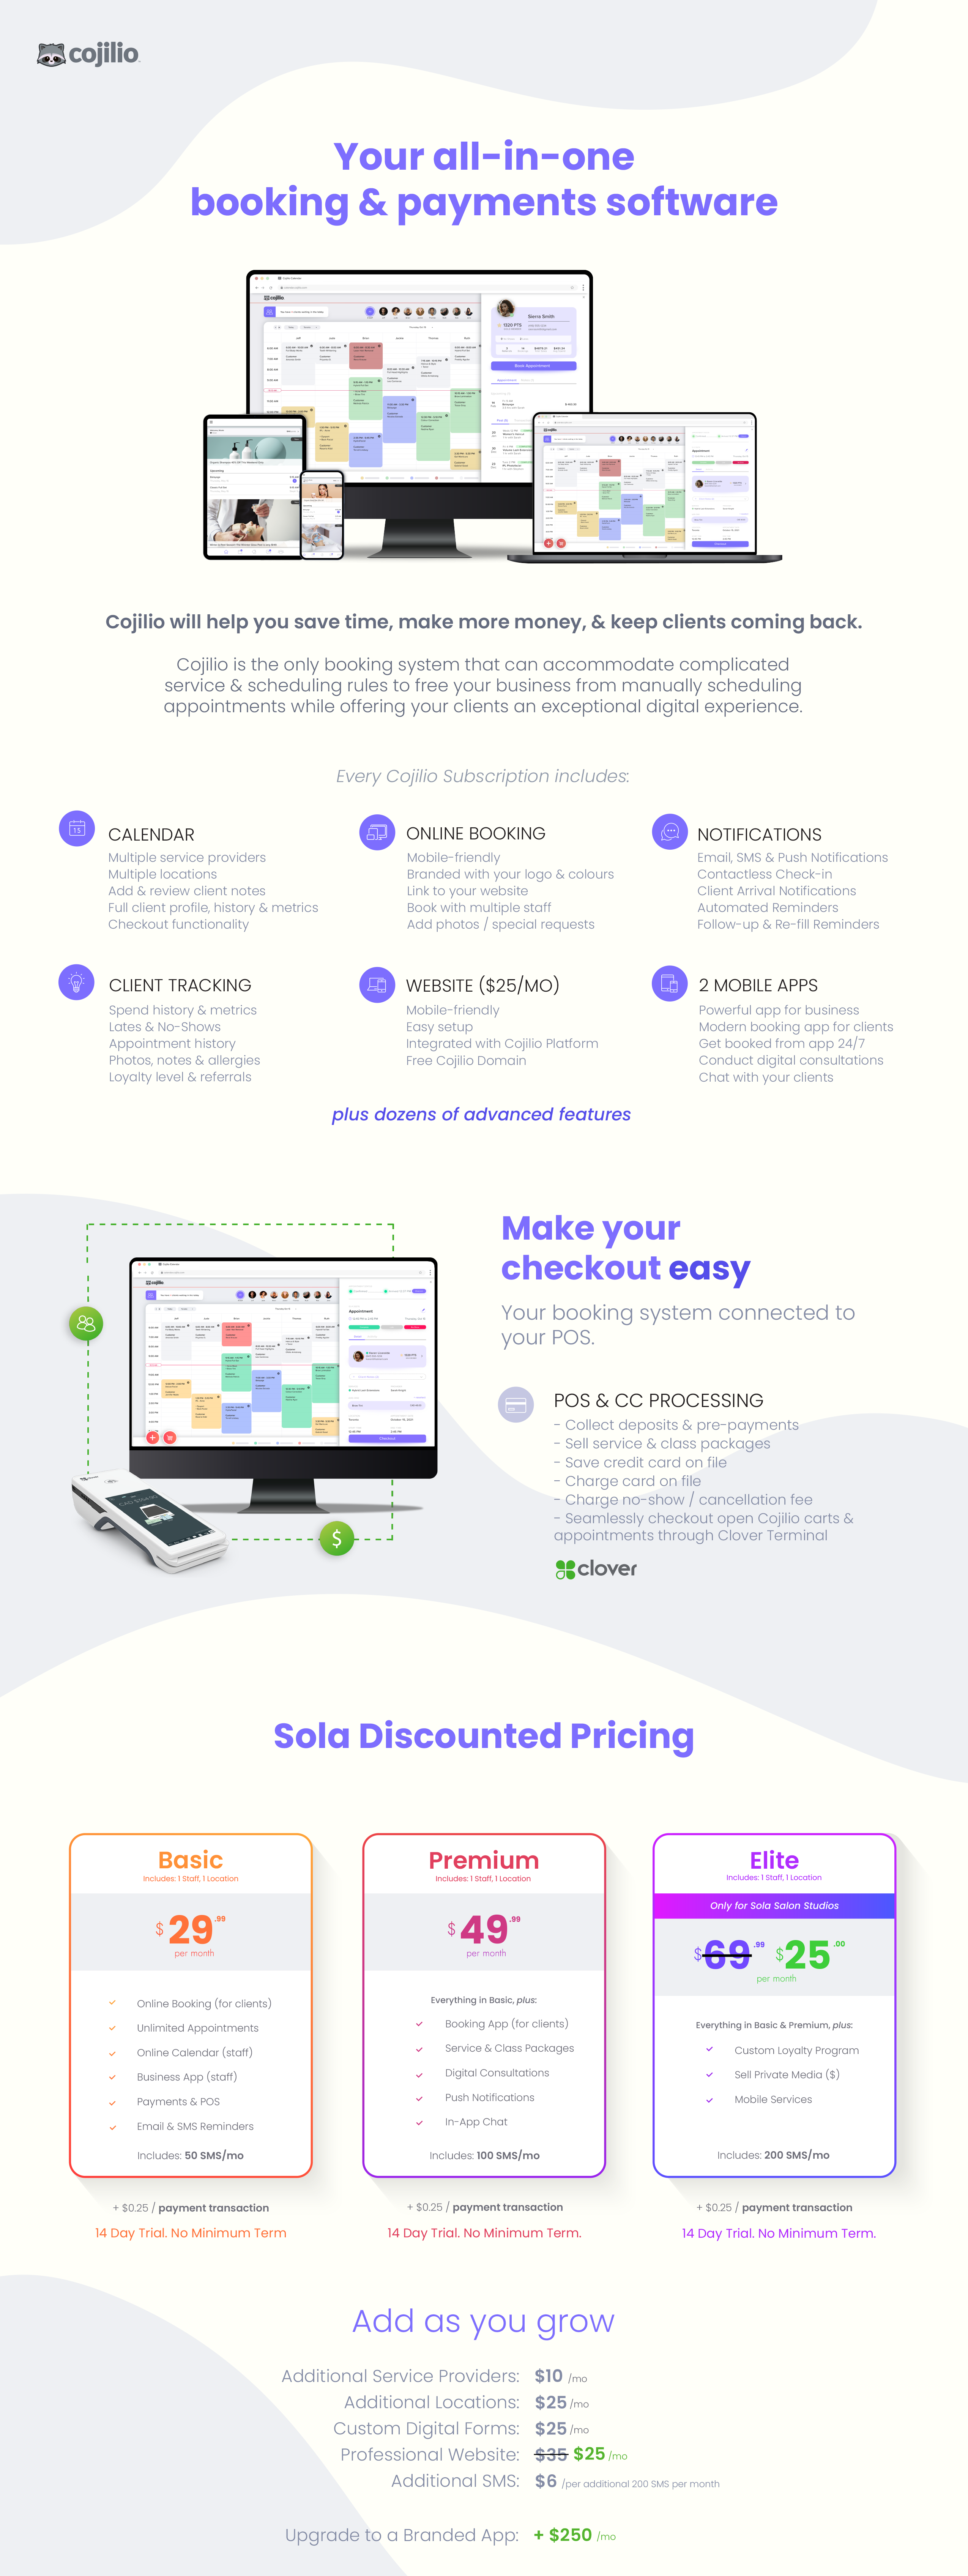 Cojilio for Landing Page